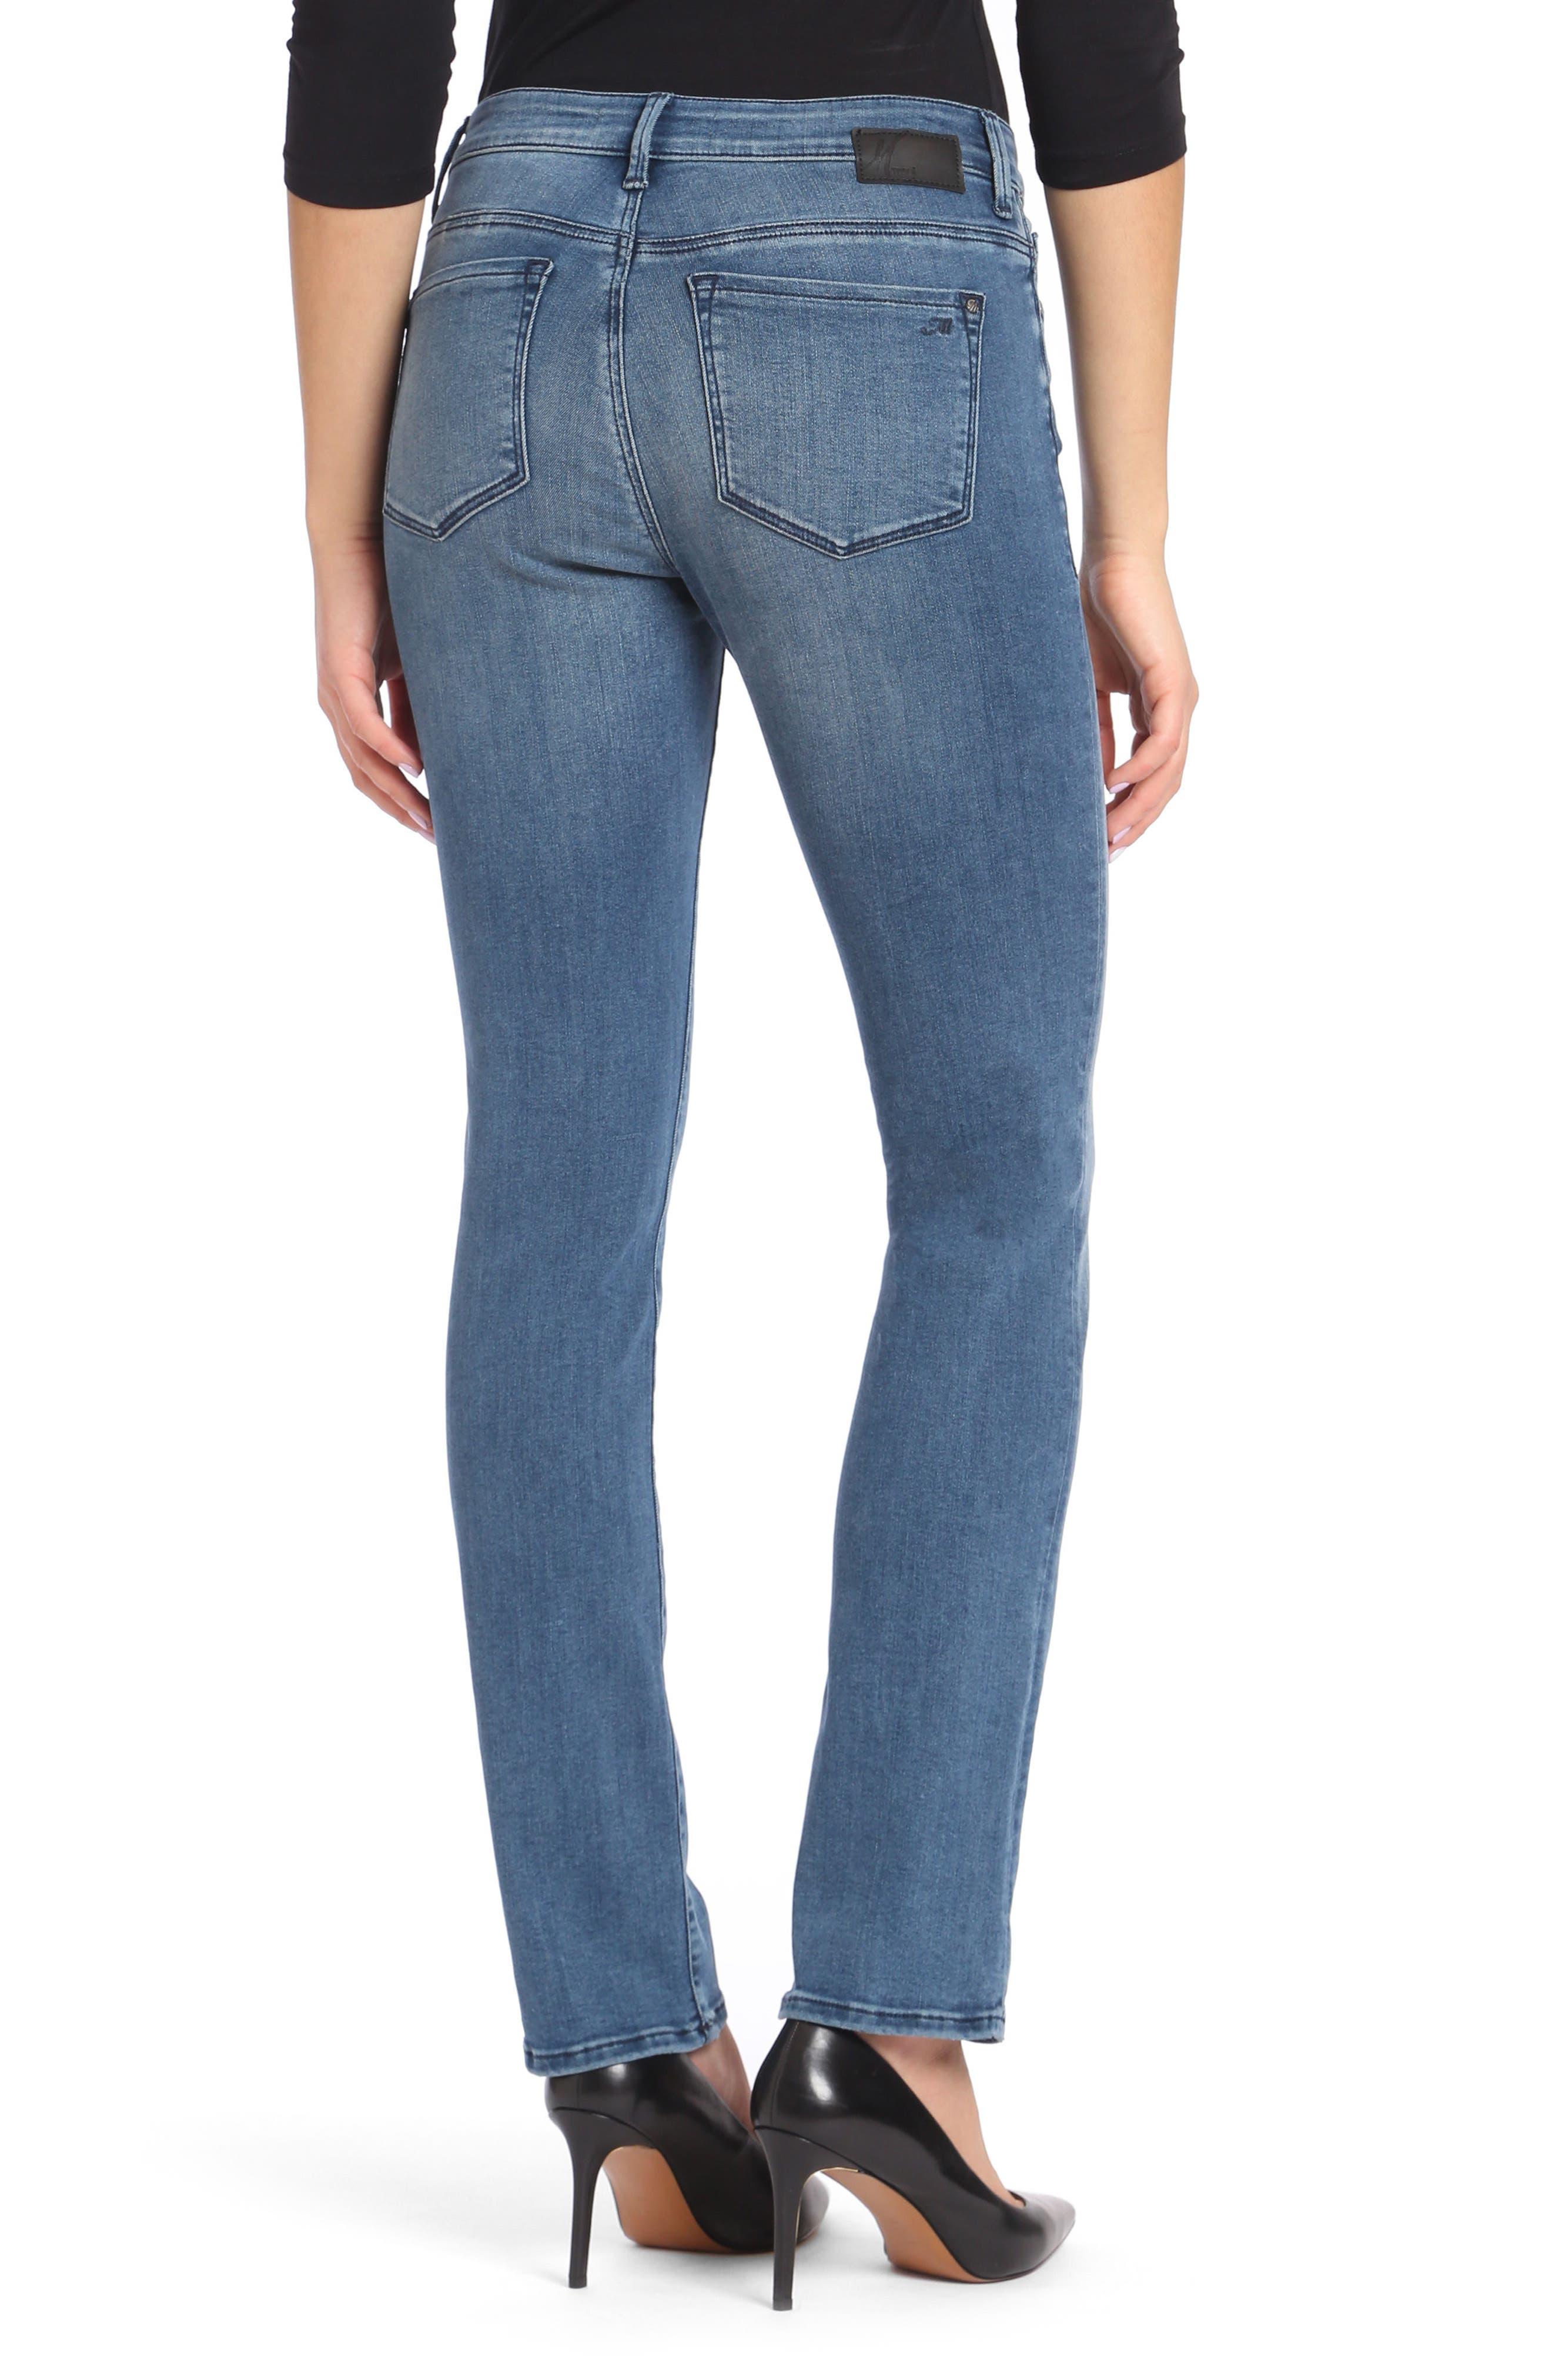 Kendra High Waist Straight Leg Jeans,                             Alternate thumbnail 2, color,                             Light Foggy Blue Tribeca